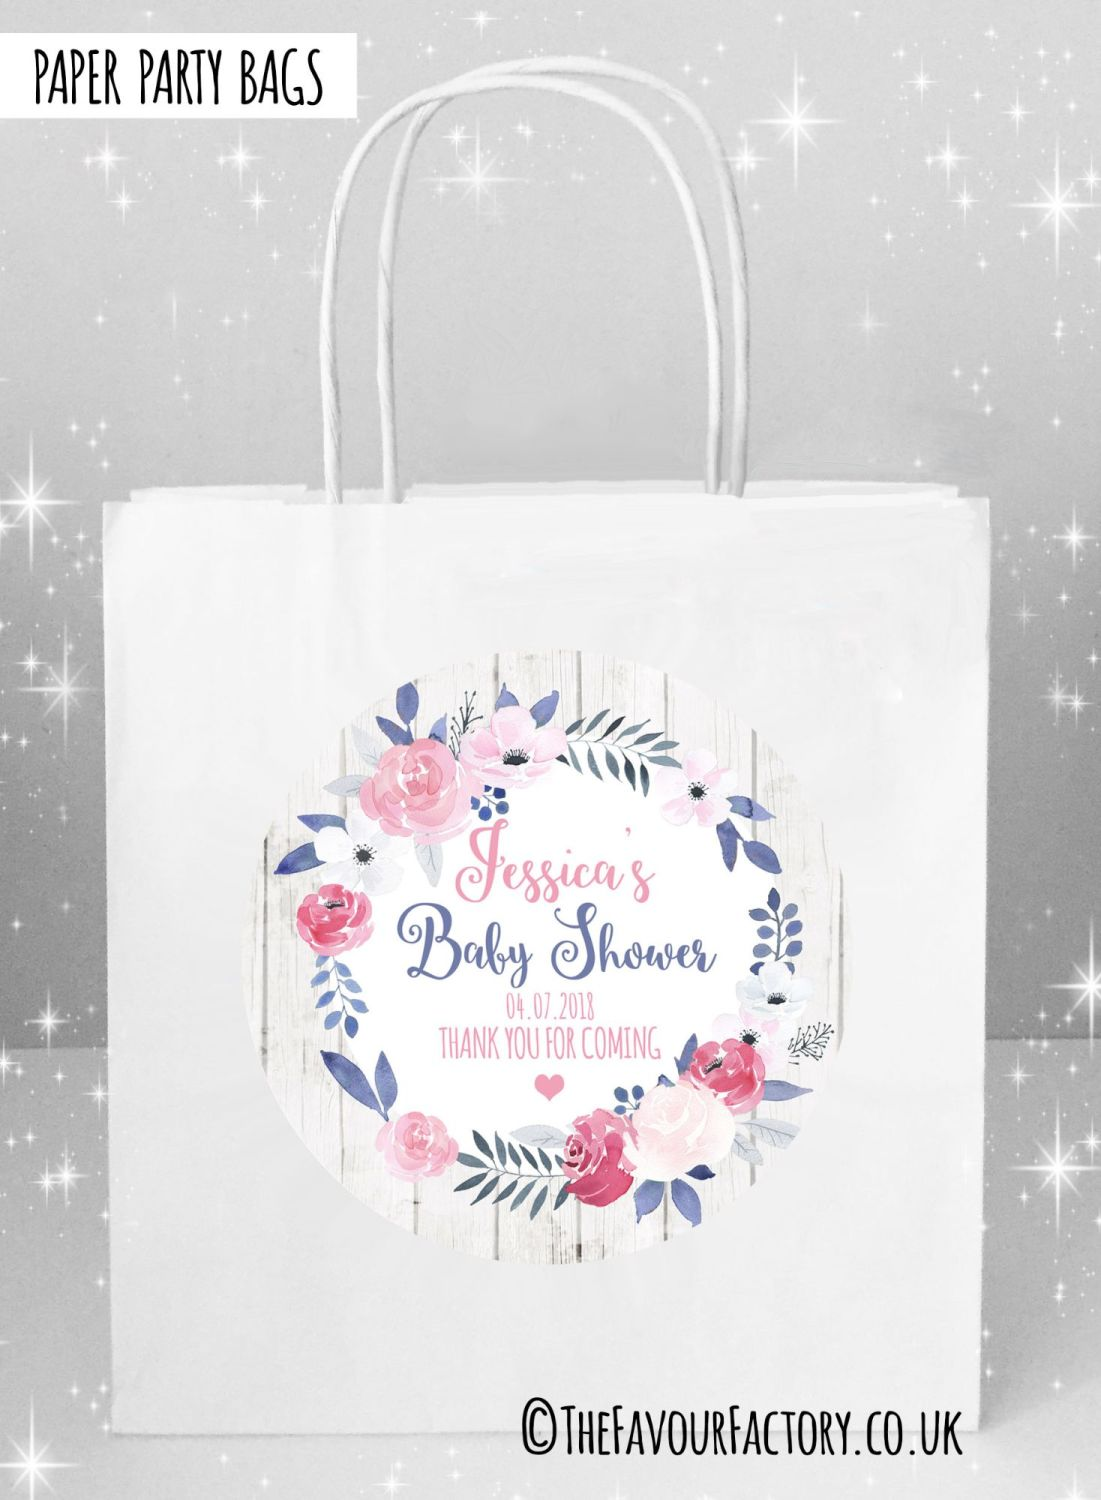 Baby Shower Party Bags midnight Rose Floral Wreath x5